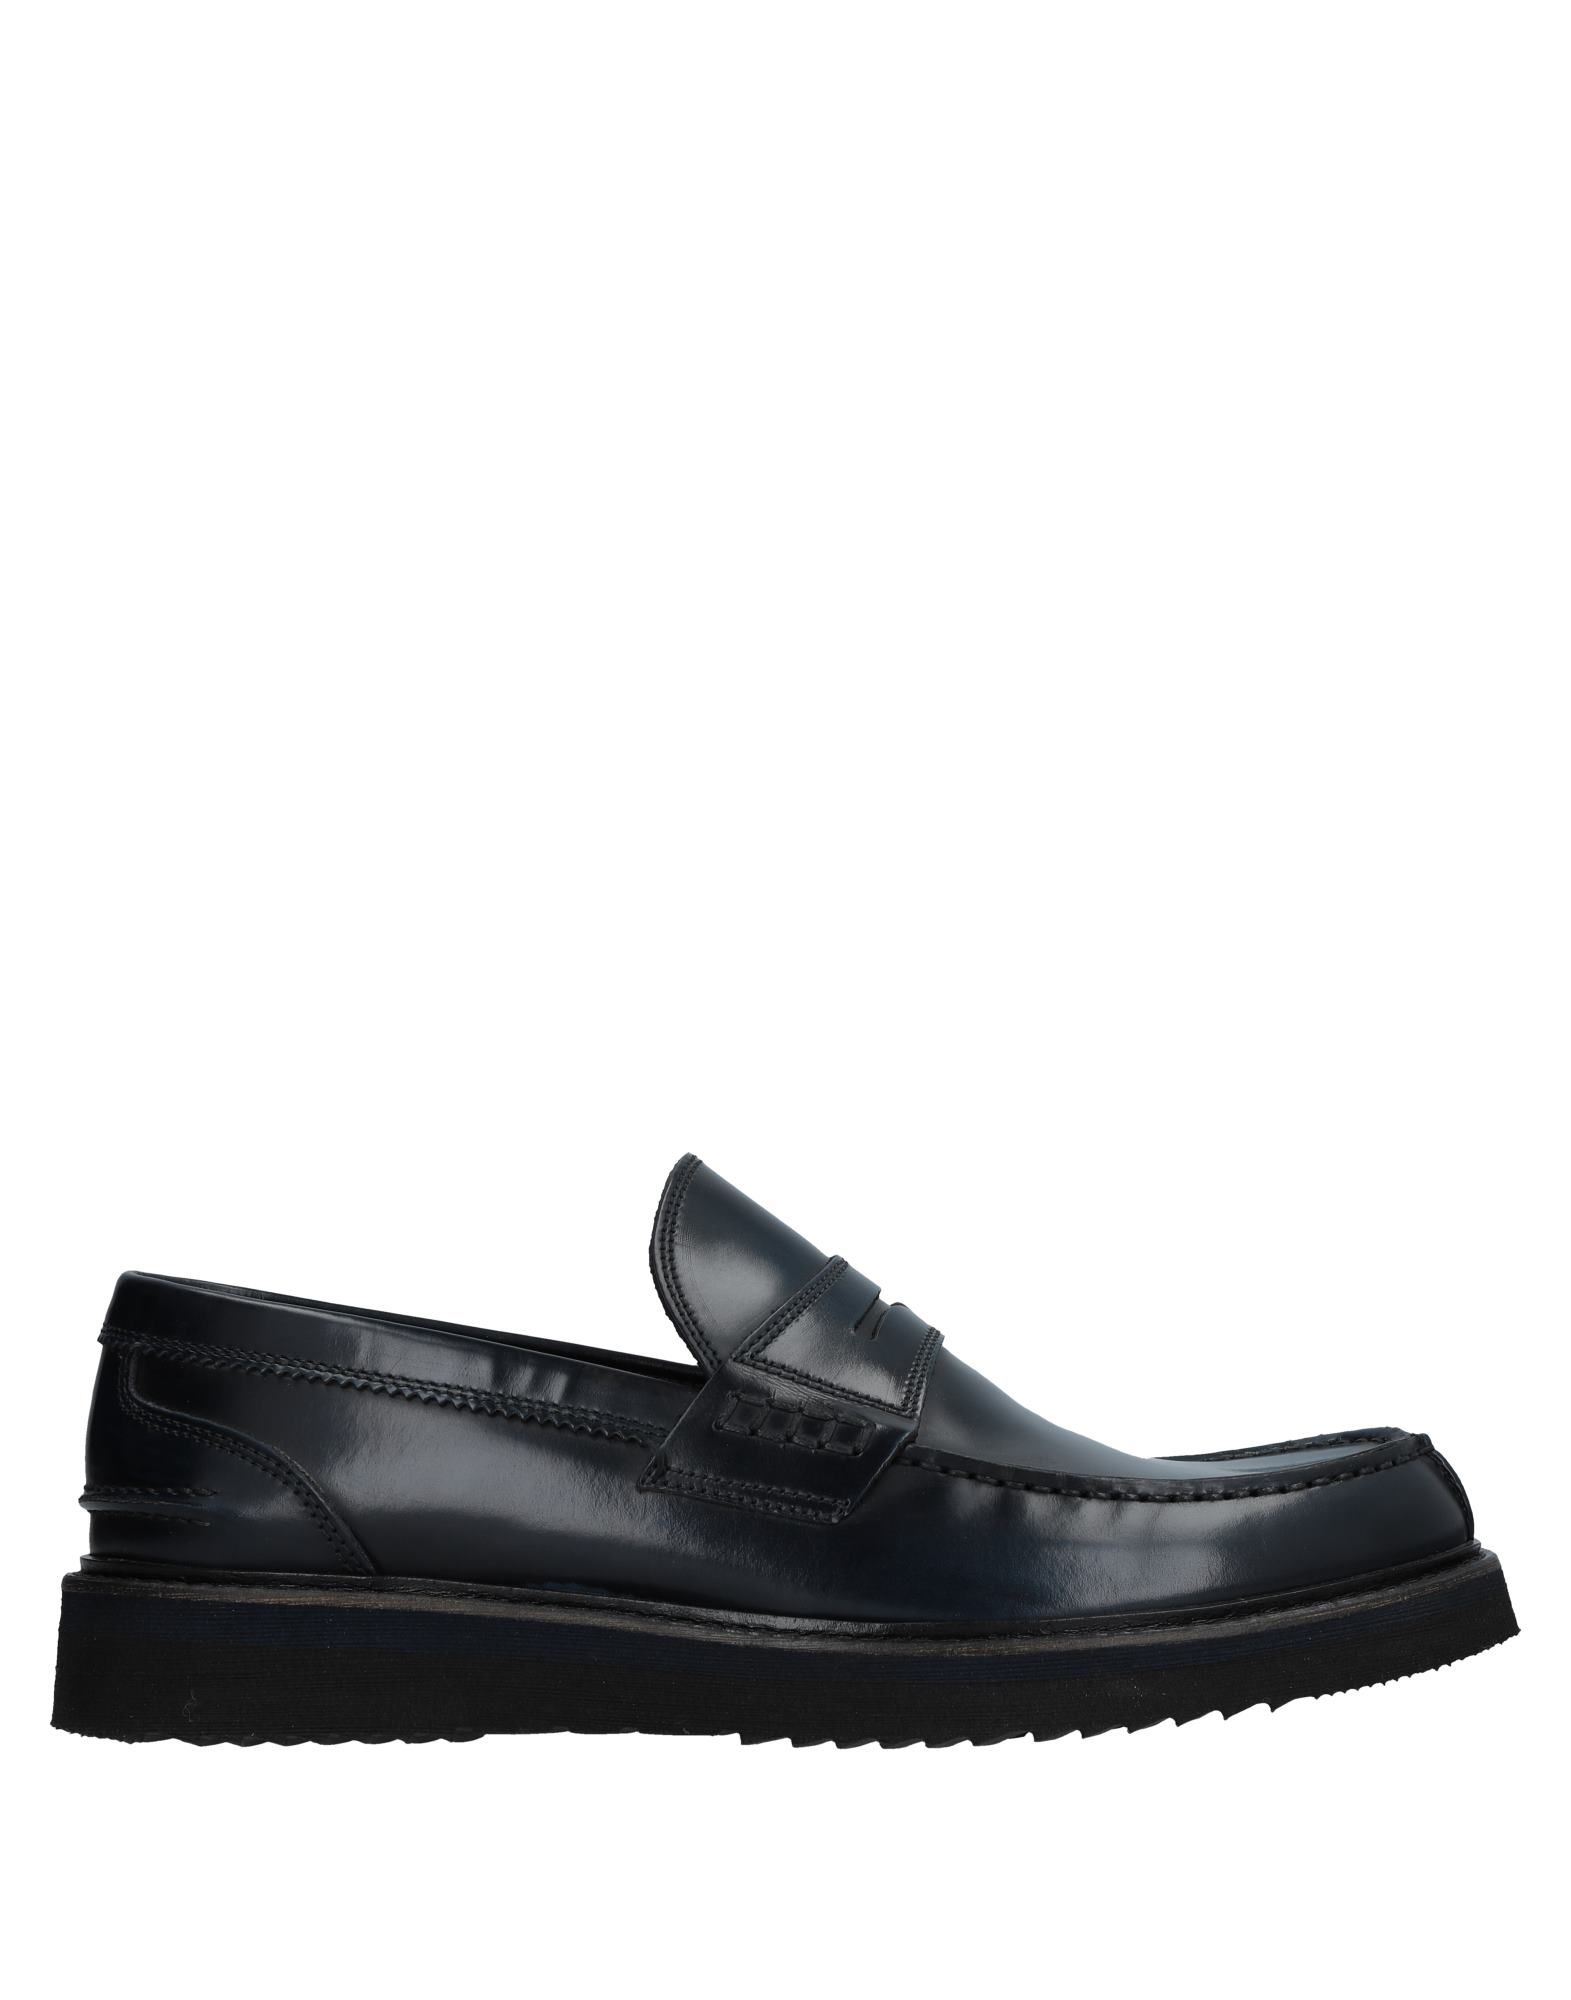 Anderson on Loafers - Men Anderson Loafers online on Anderson  Australia - 11521771MM 6acce8